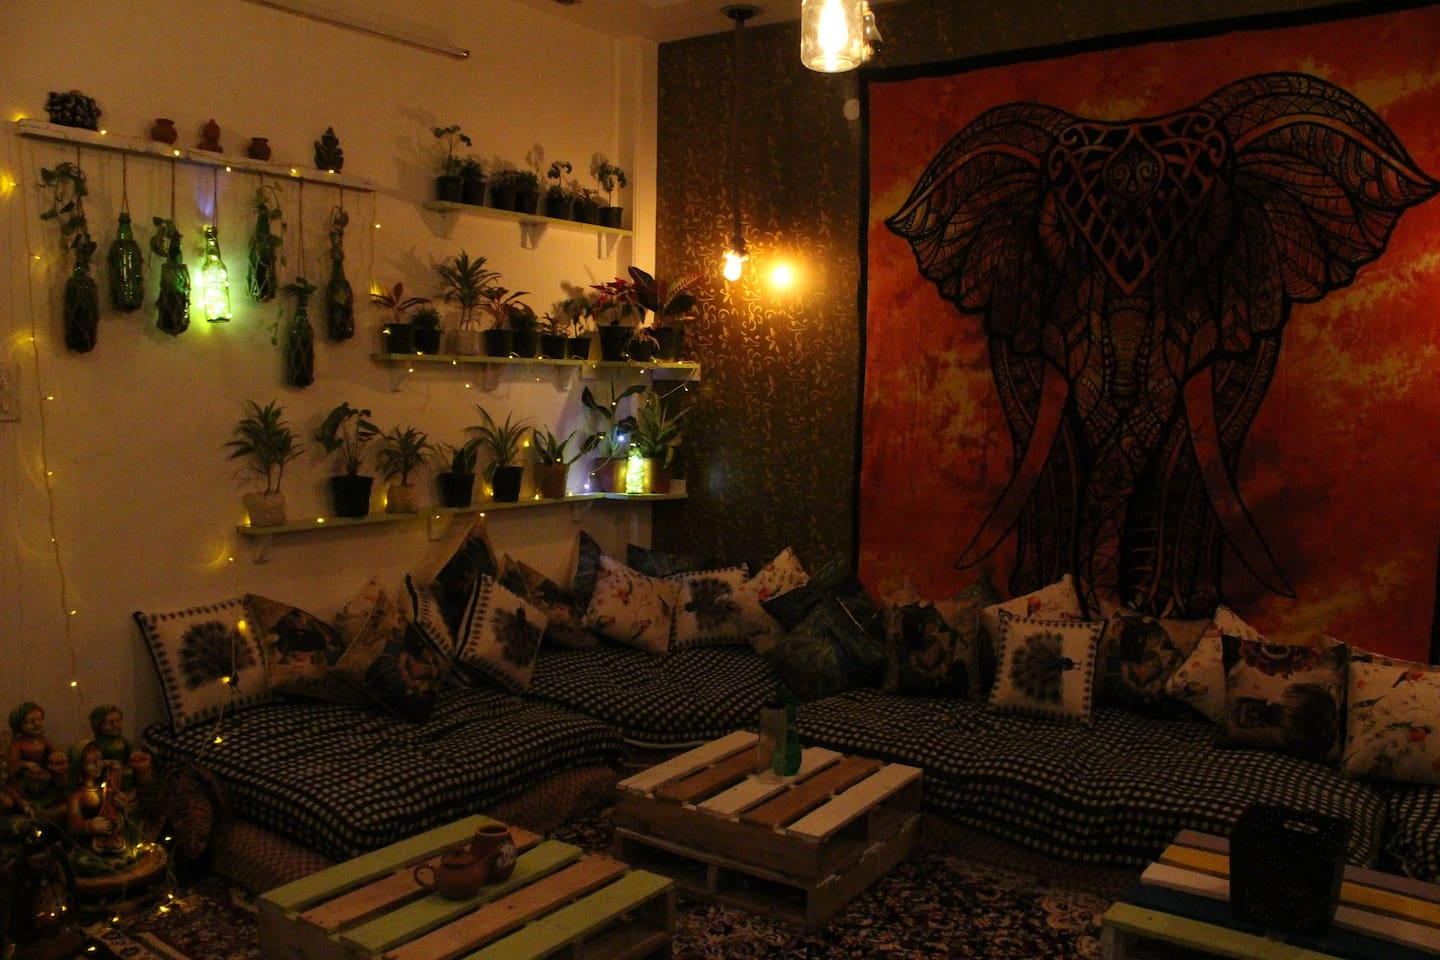 Living area decorated with plants